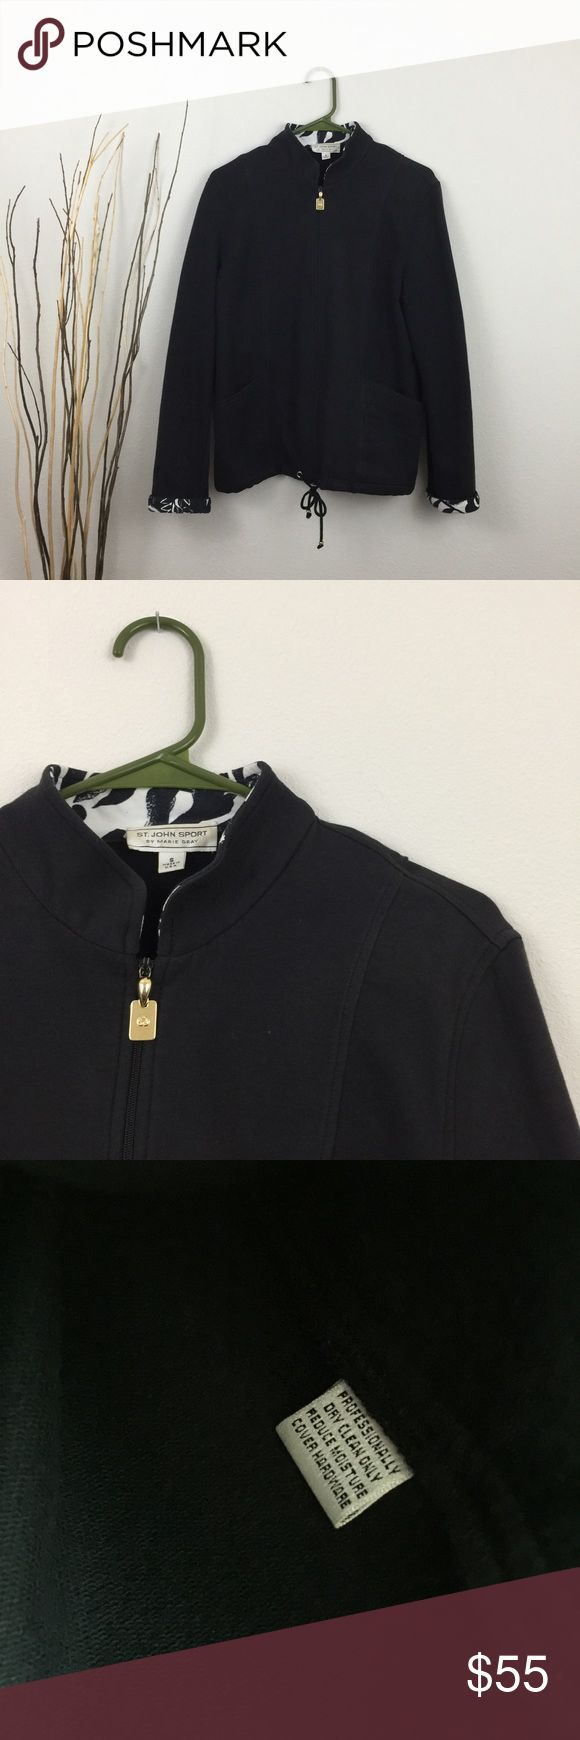 St.John Sport Black Zip Up Jacket This jacket is in excellent condition! No damage like holes or stains. No trades. Smoke and pet free home. Offers welcome! St. John Jackets & Coats